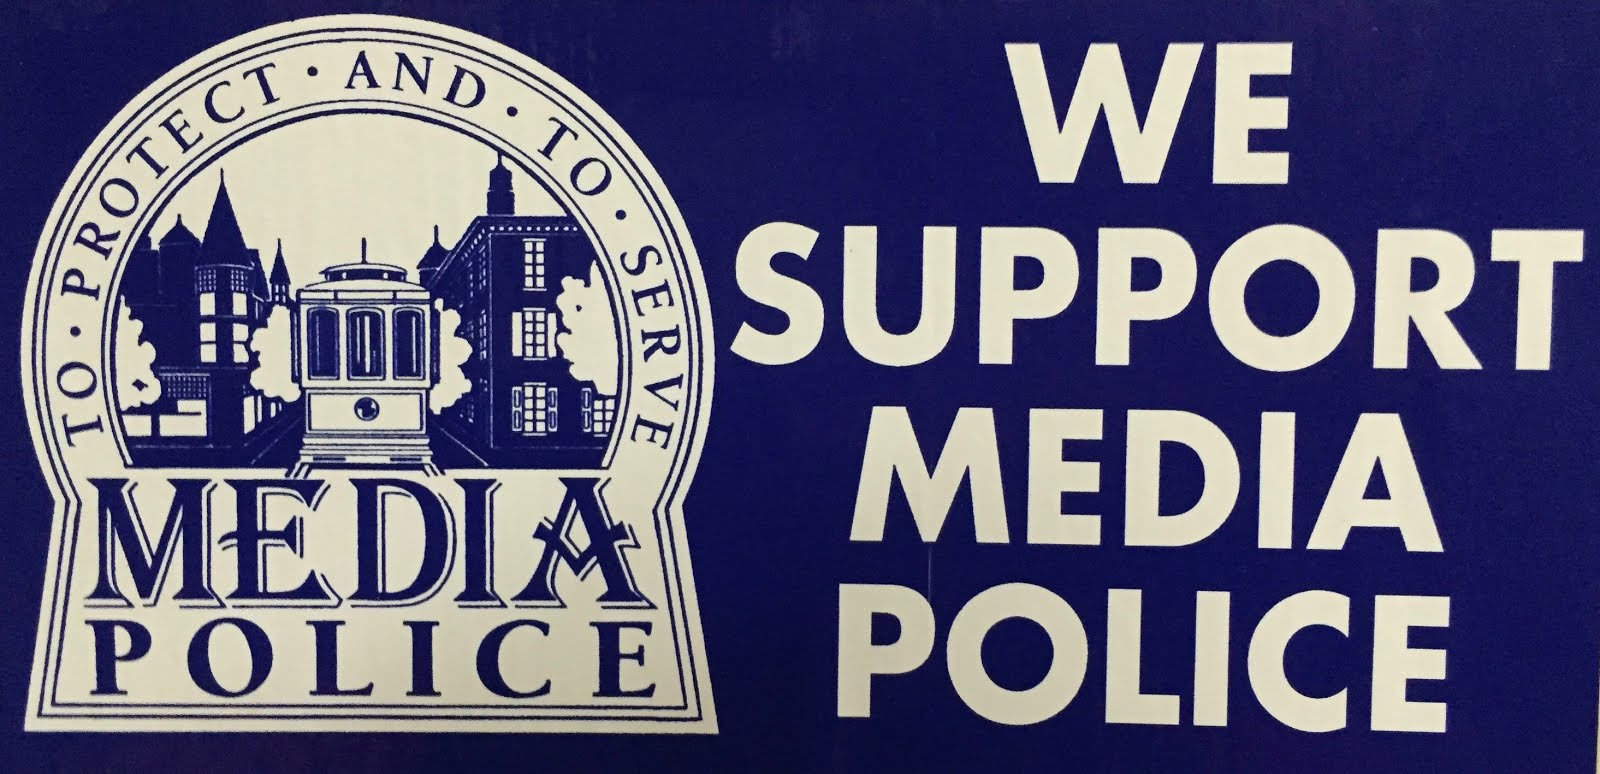 We Support Media Police and First Responders